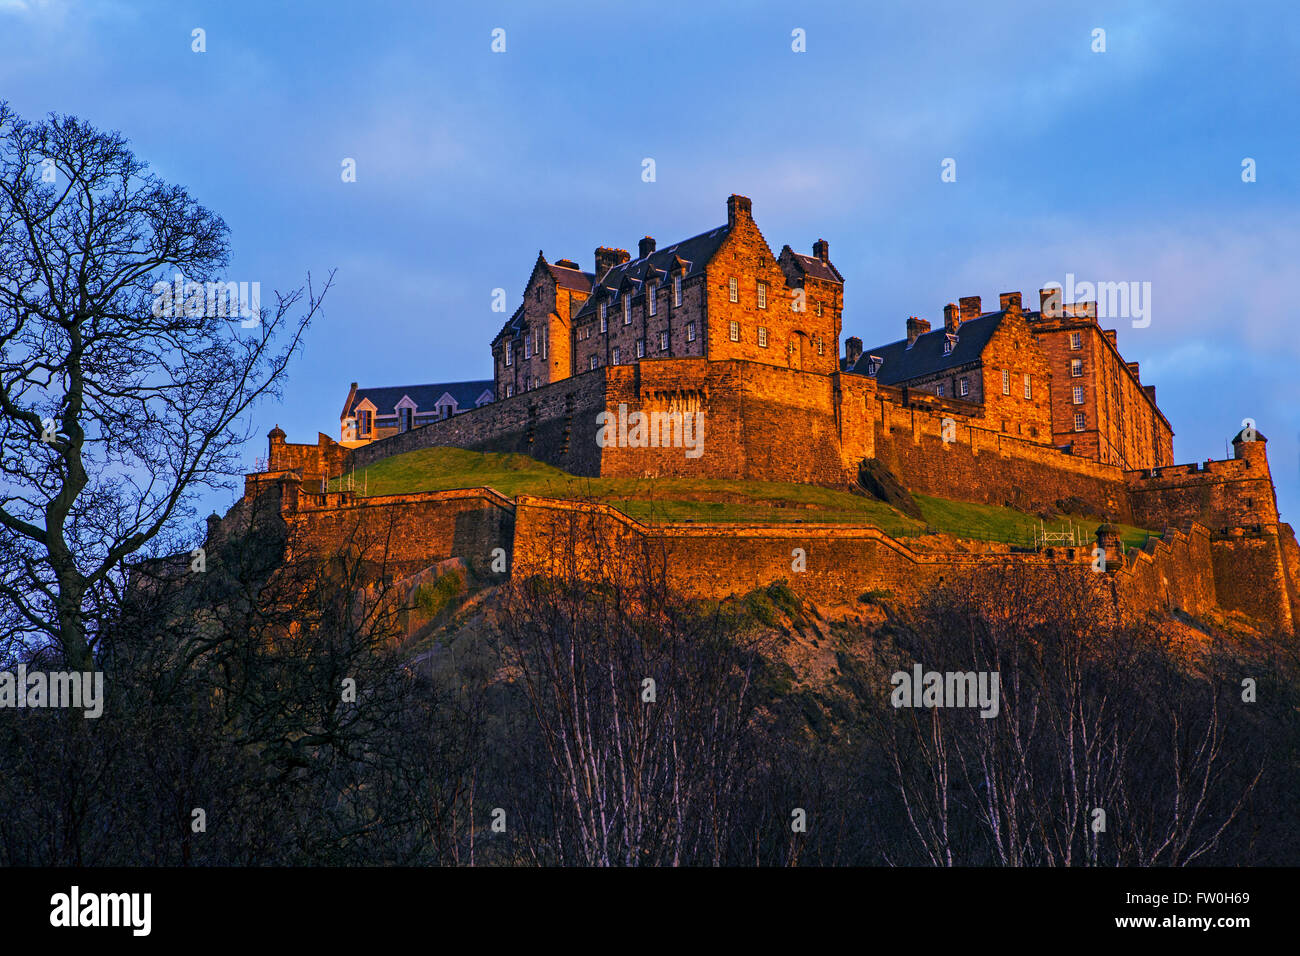 A view of the magnificent Edinburgh Castle in Scotland. - Stock Image